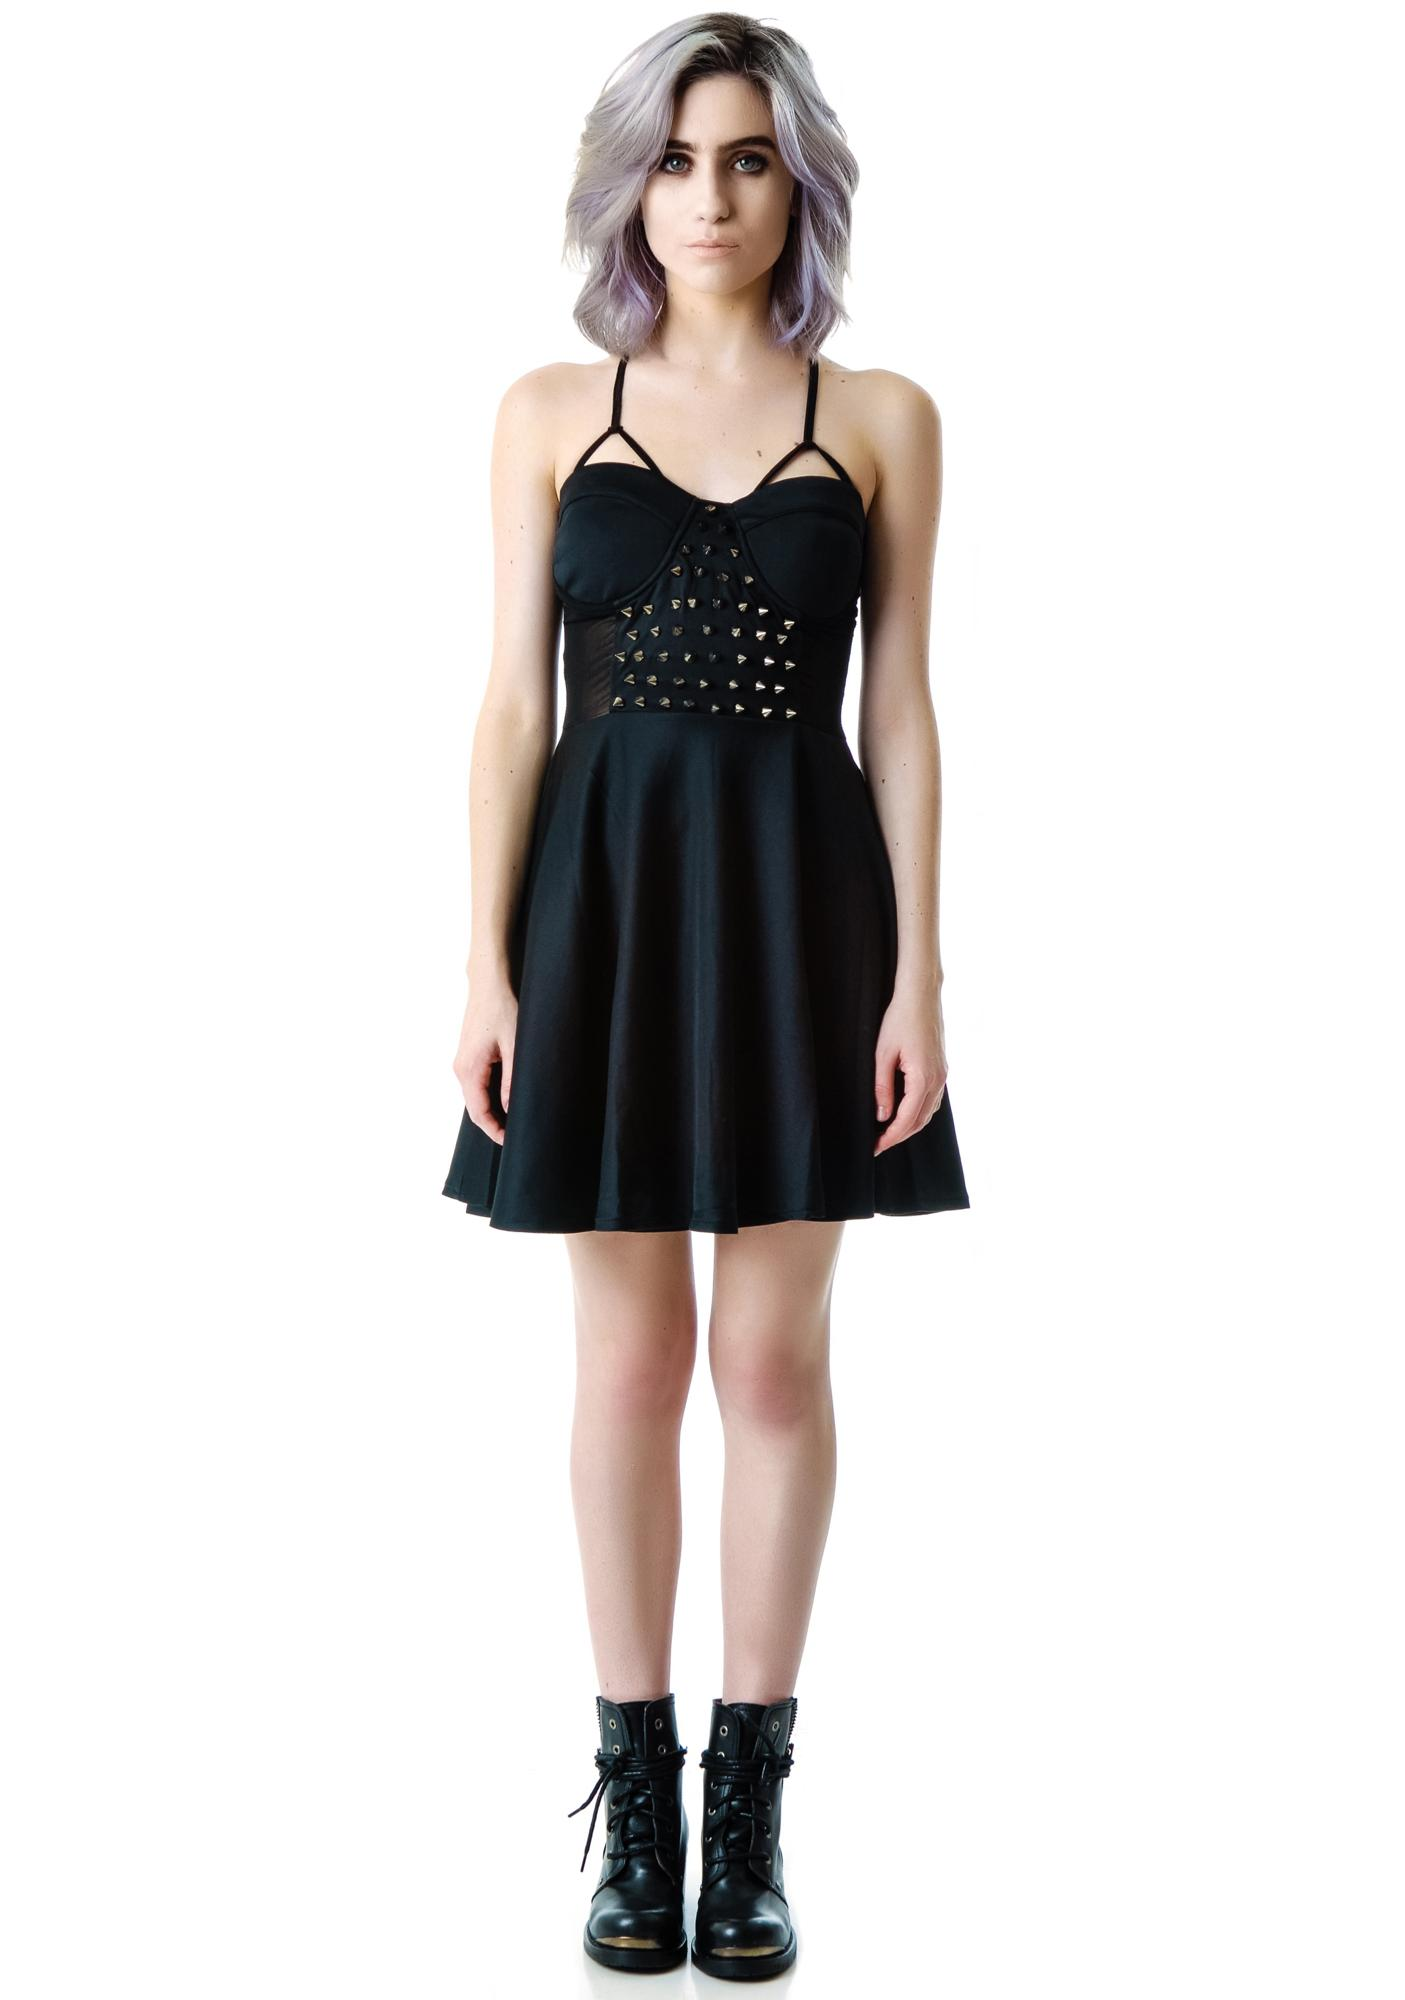 Dempsey Spiked Sheer Mid Dress